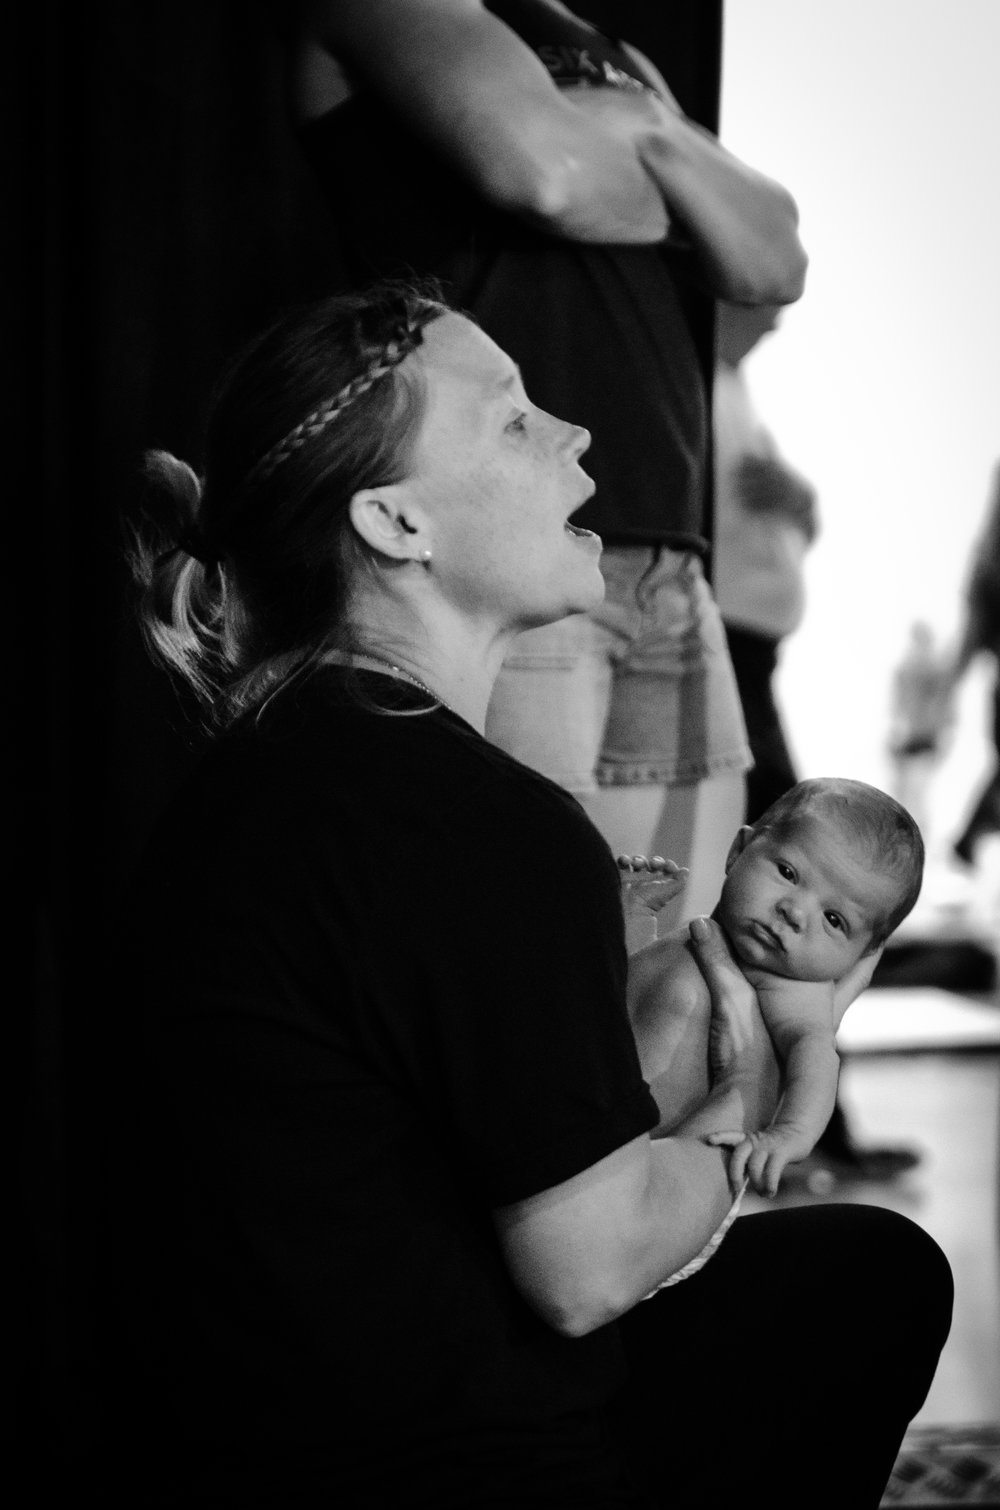 Levi, only a few days old, knew how to pose for the camera.  Photo taken by:  Ryan Paiva from Lifting Life